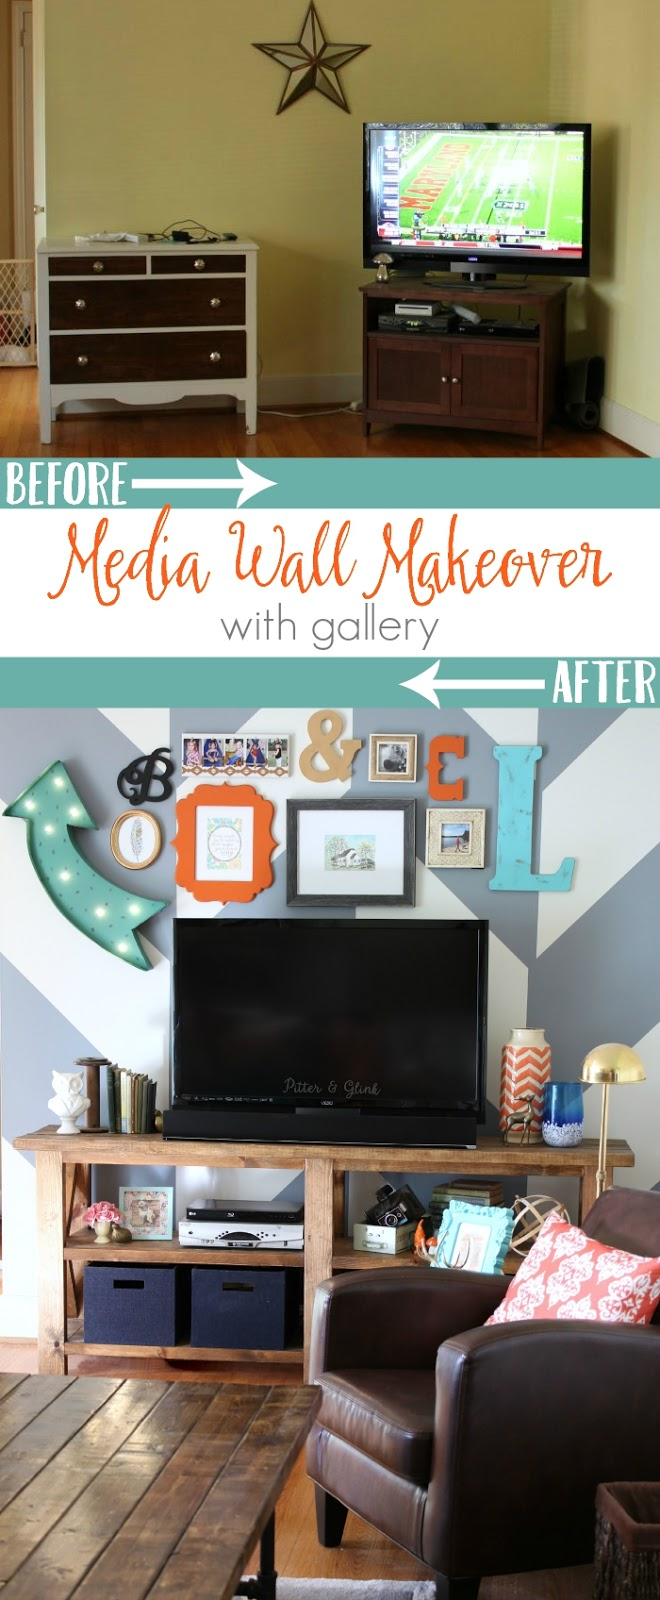 Before & After: A Media Wall Makeover Featuring an Eclectic Gallery www.pitterandglink.com